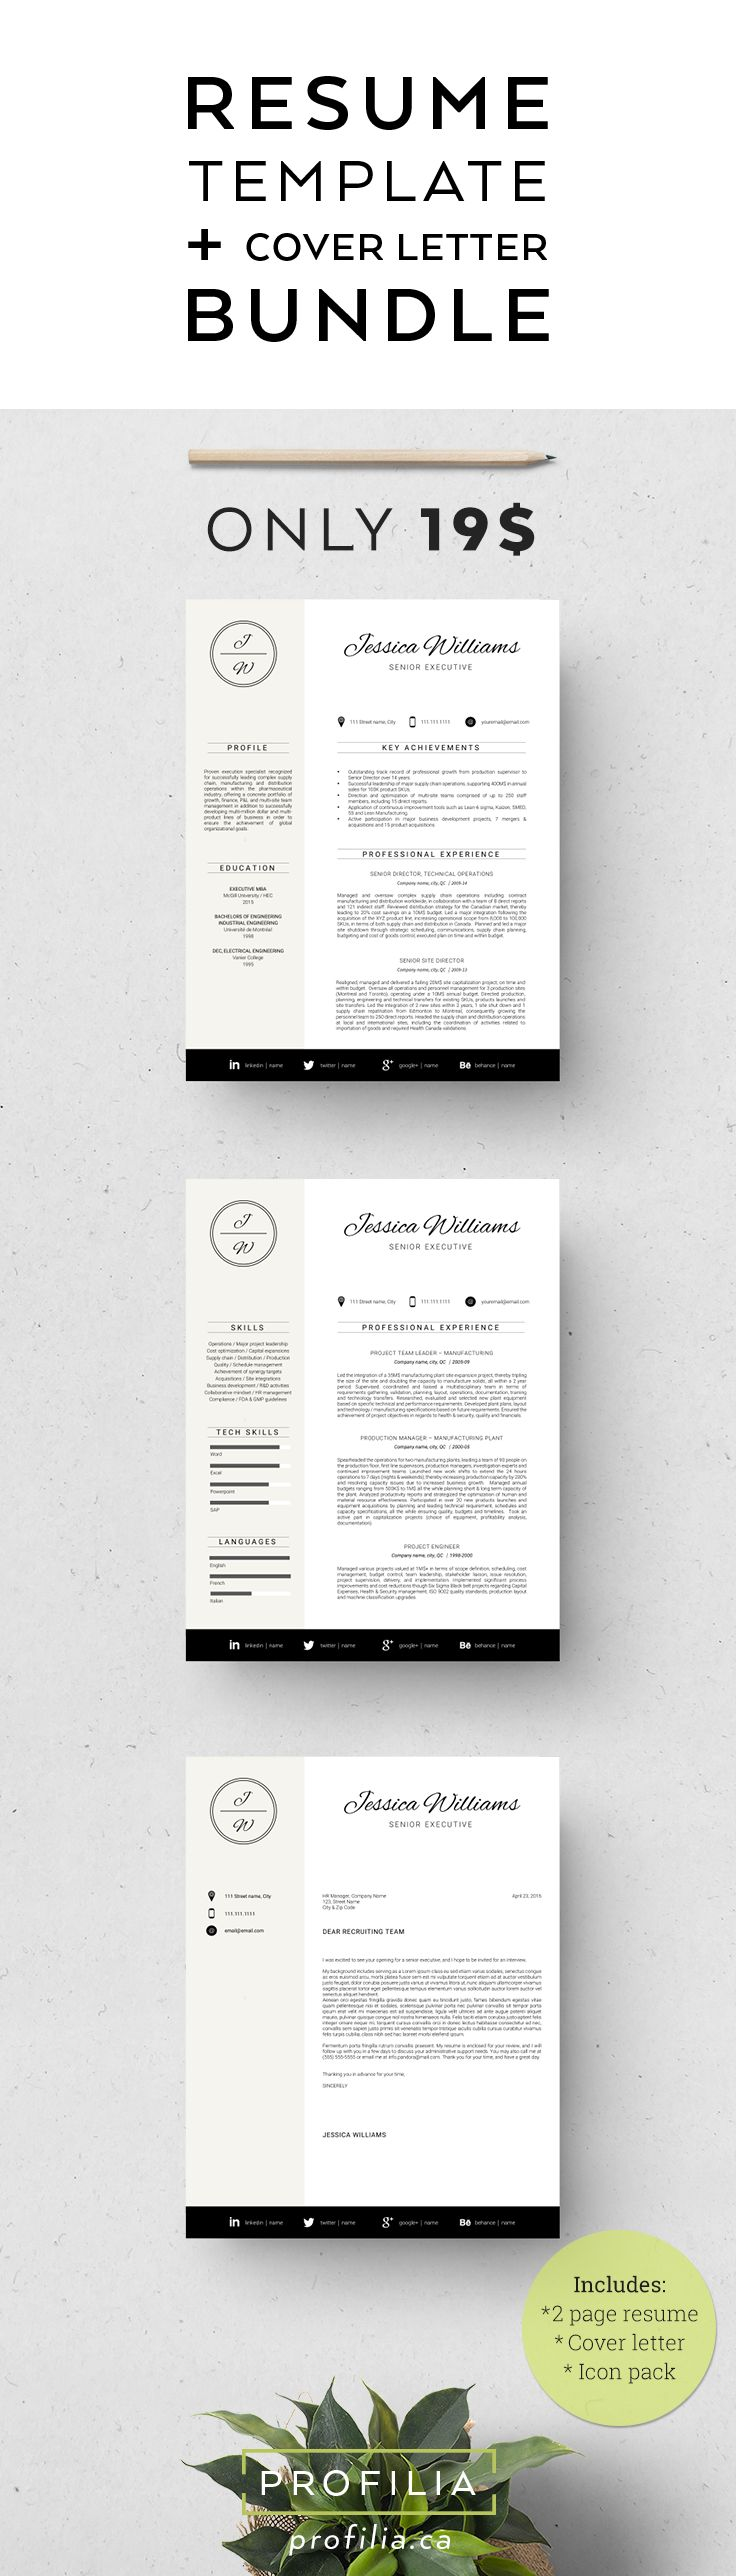 Magnificent 1 Page Resume Format Free Download Big 10 Envelope Template Regular 15 Year Old Resume Sample 18th Invitation Templates Young 1and1 Templates Purple2 Binder Spine Template 25  Best Ideas About Cover Letter Format On Pinterest ..